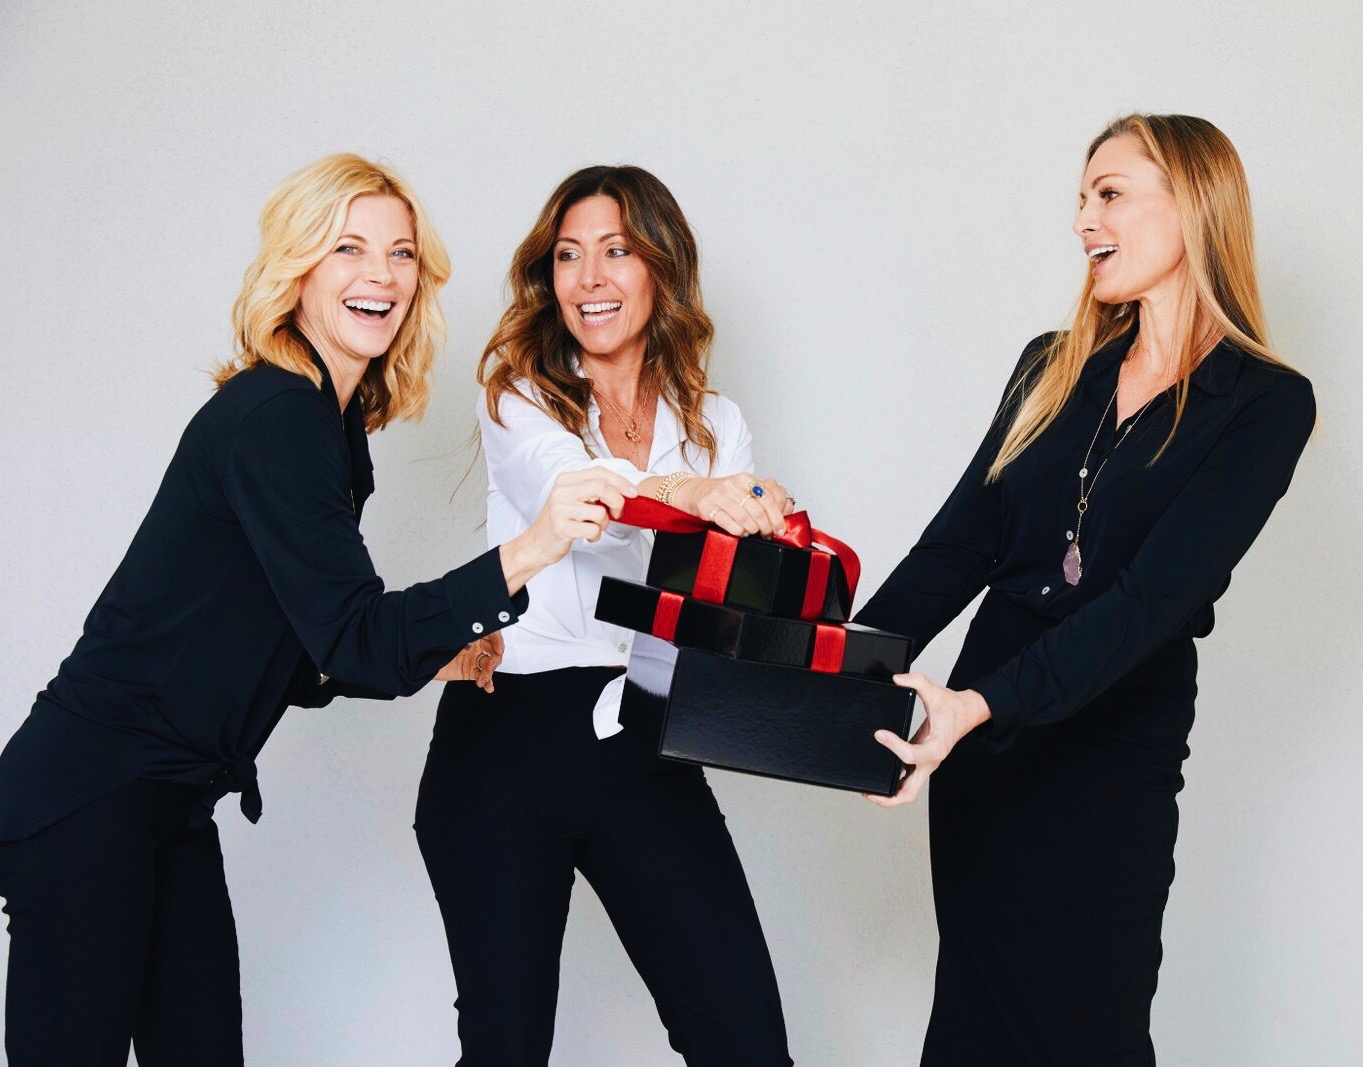 Melissa Meyers + The Glow Girl + Gift Guide For Her